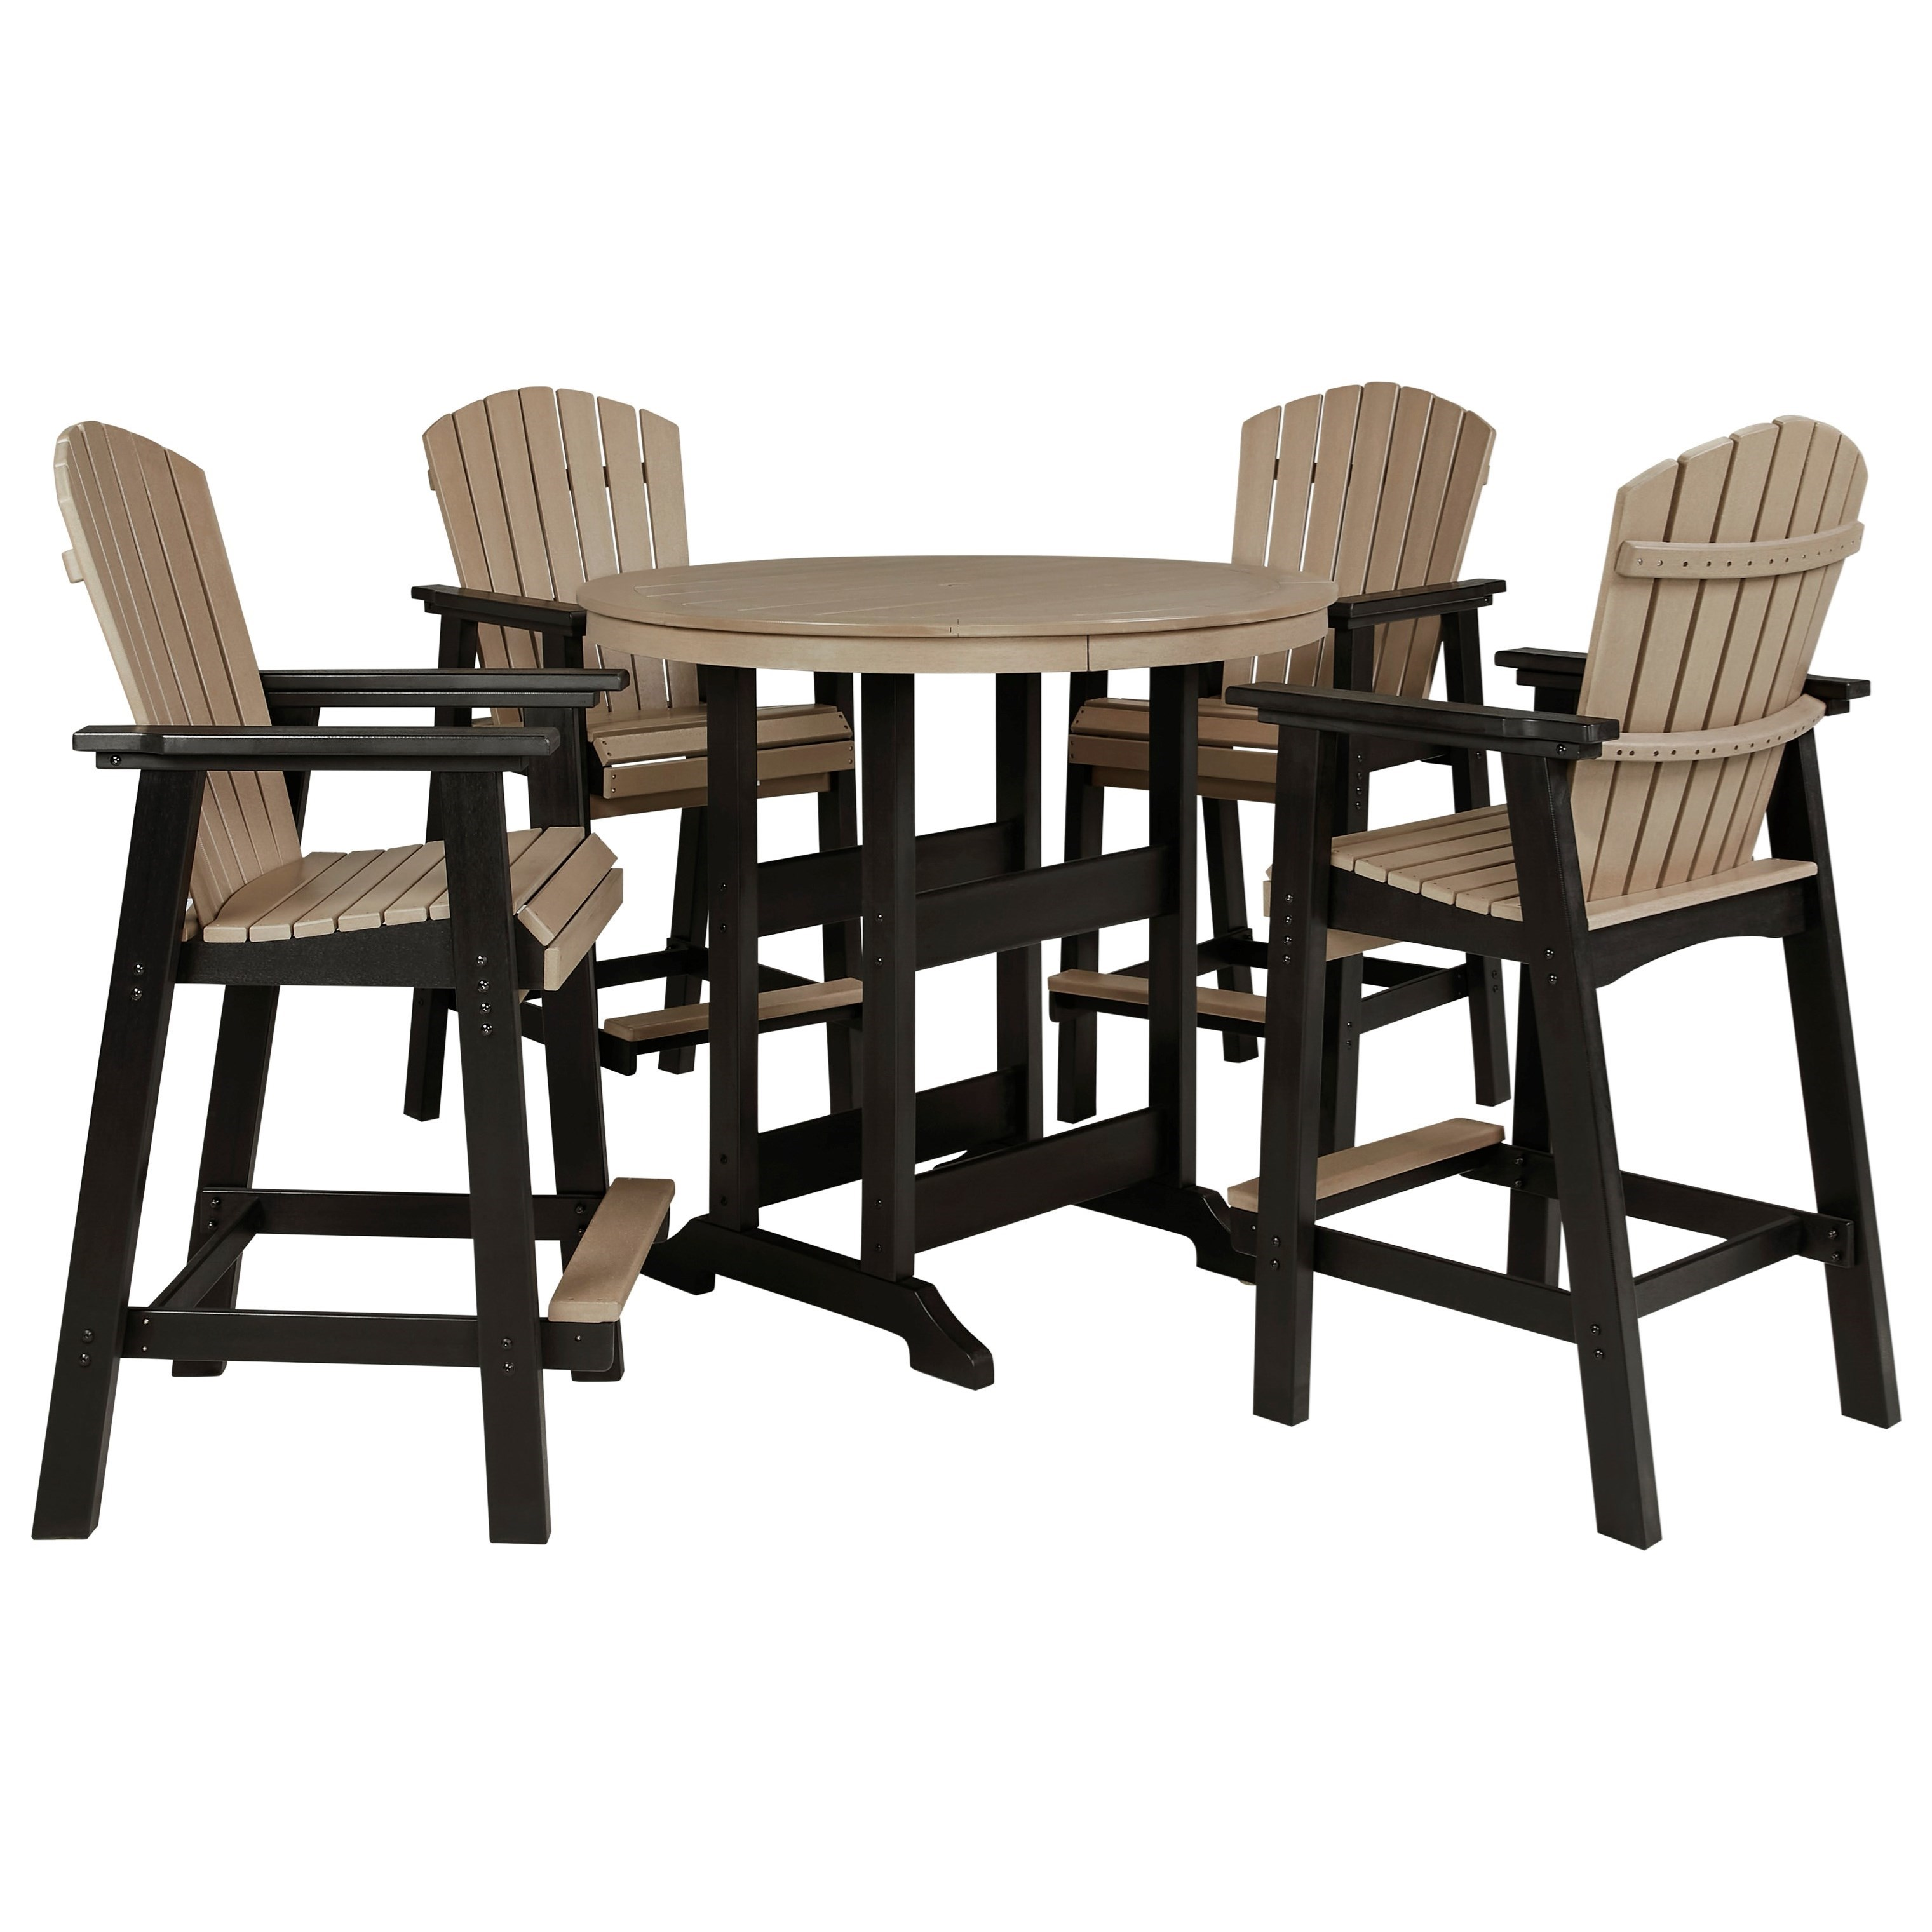 Fairen Trail 5-Piece Round Bar Table Set by Signature Design by Ashley at Northeast Factory Direct